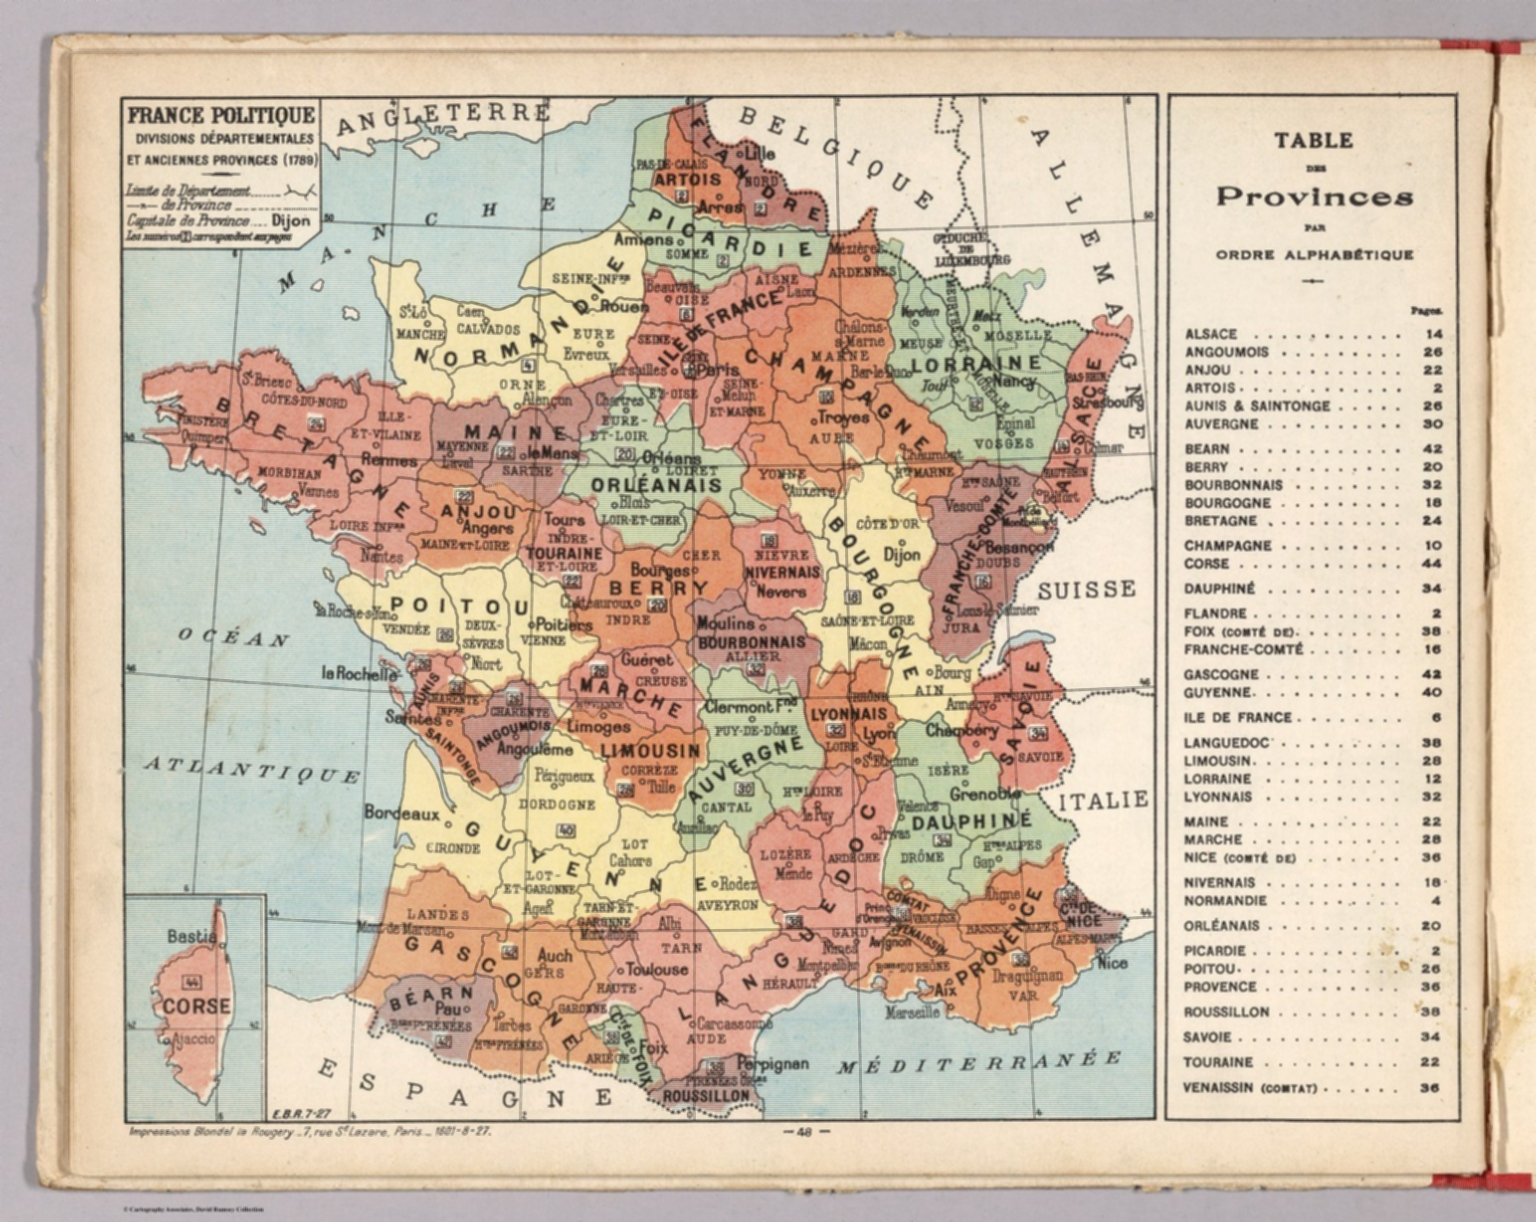 Map Of France In 1789.France Politique Divisions Departementales Et Anciennes Provinces